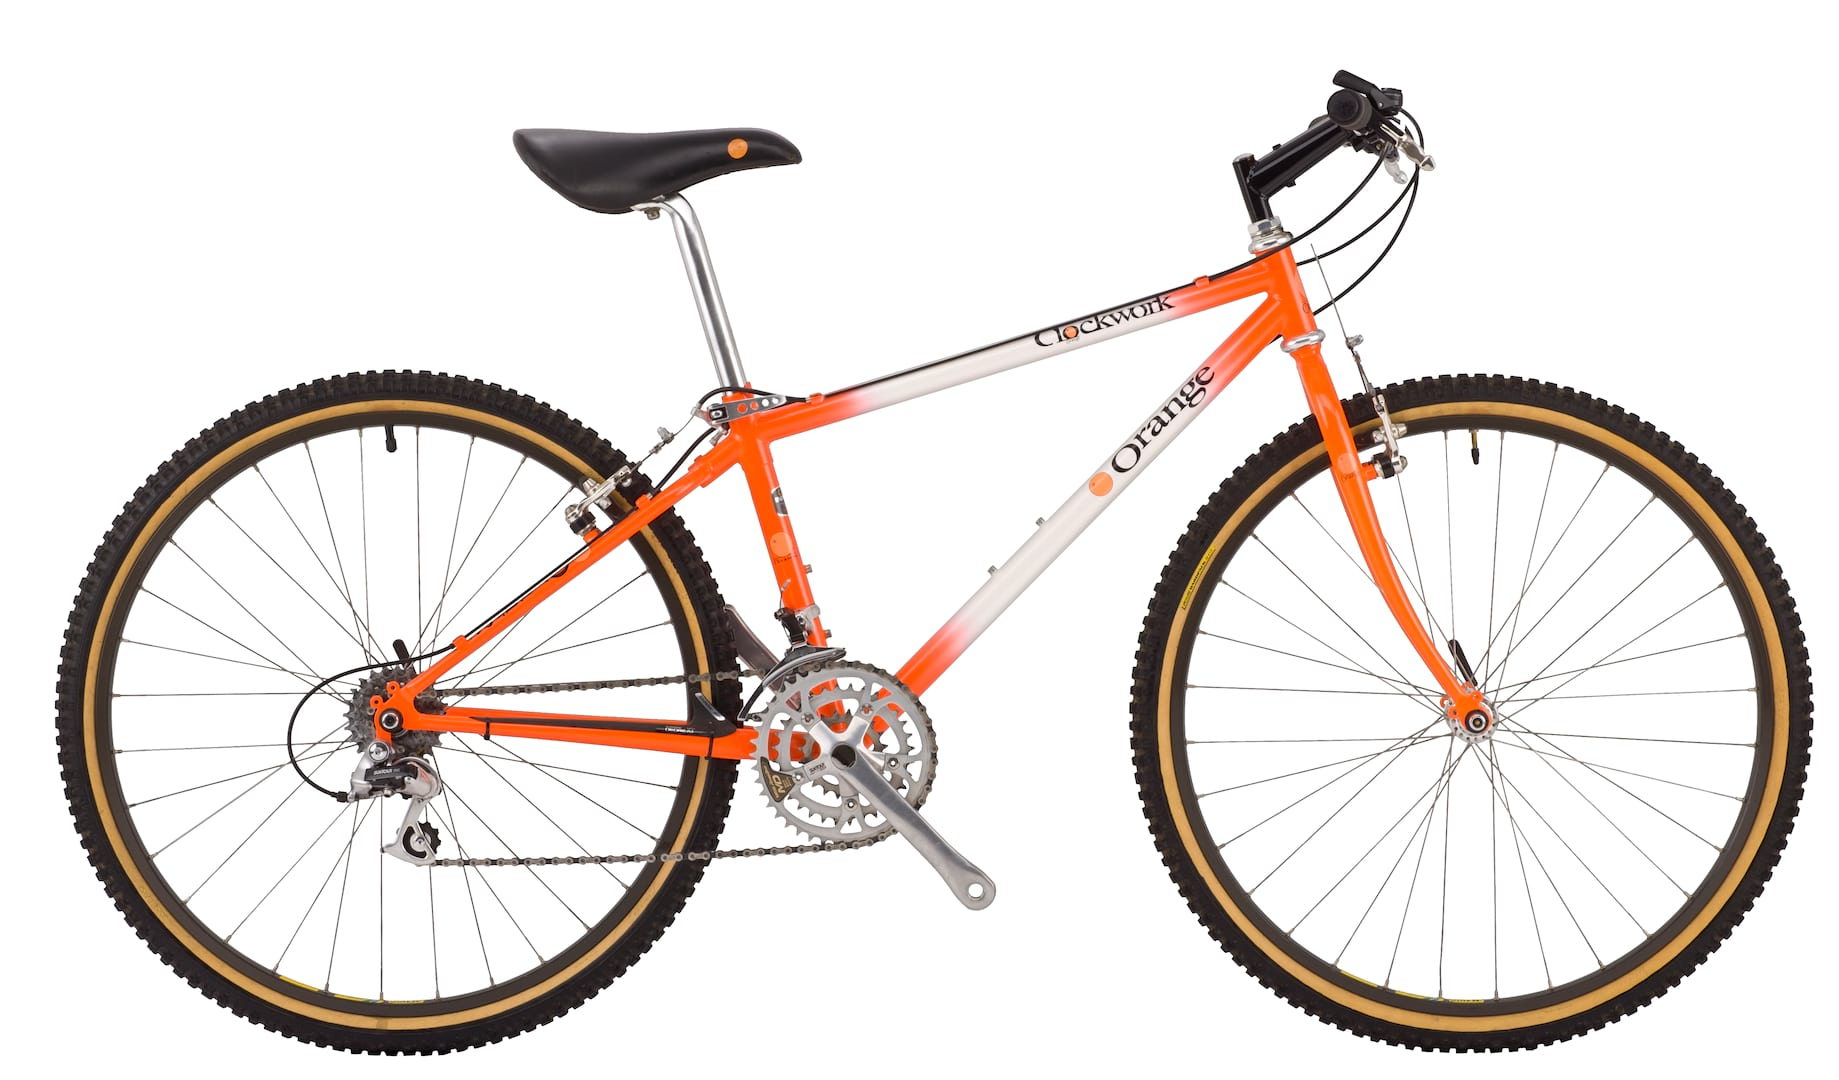 04dfa317926 These Are Our Top 12 Orange Bikes From The Past 30 Years ...